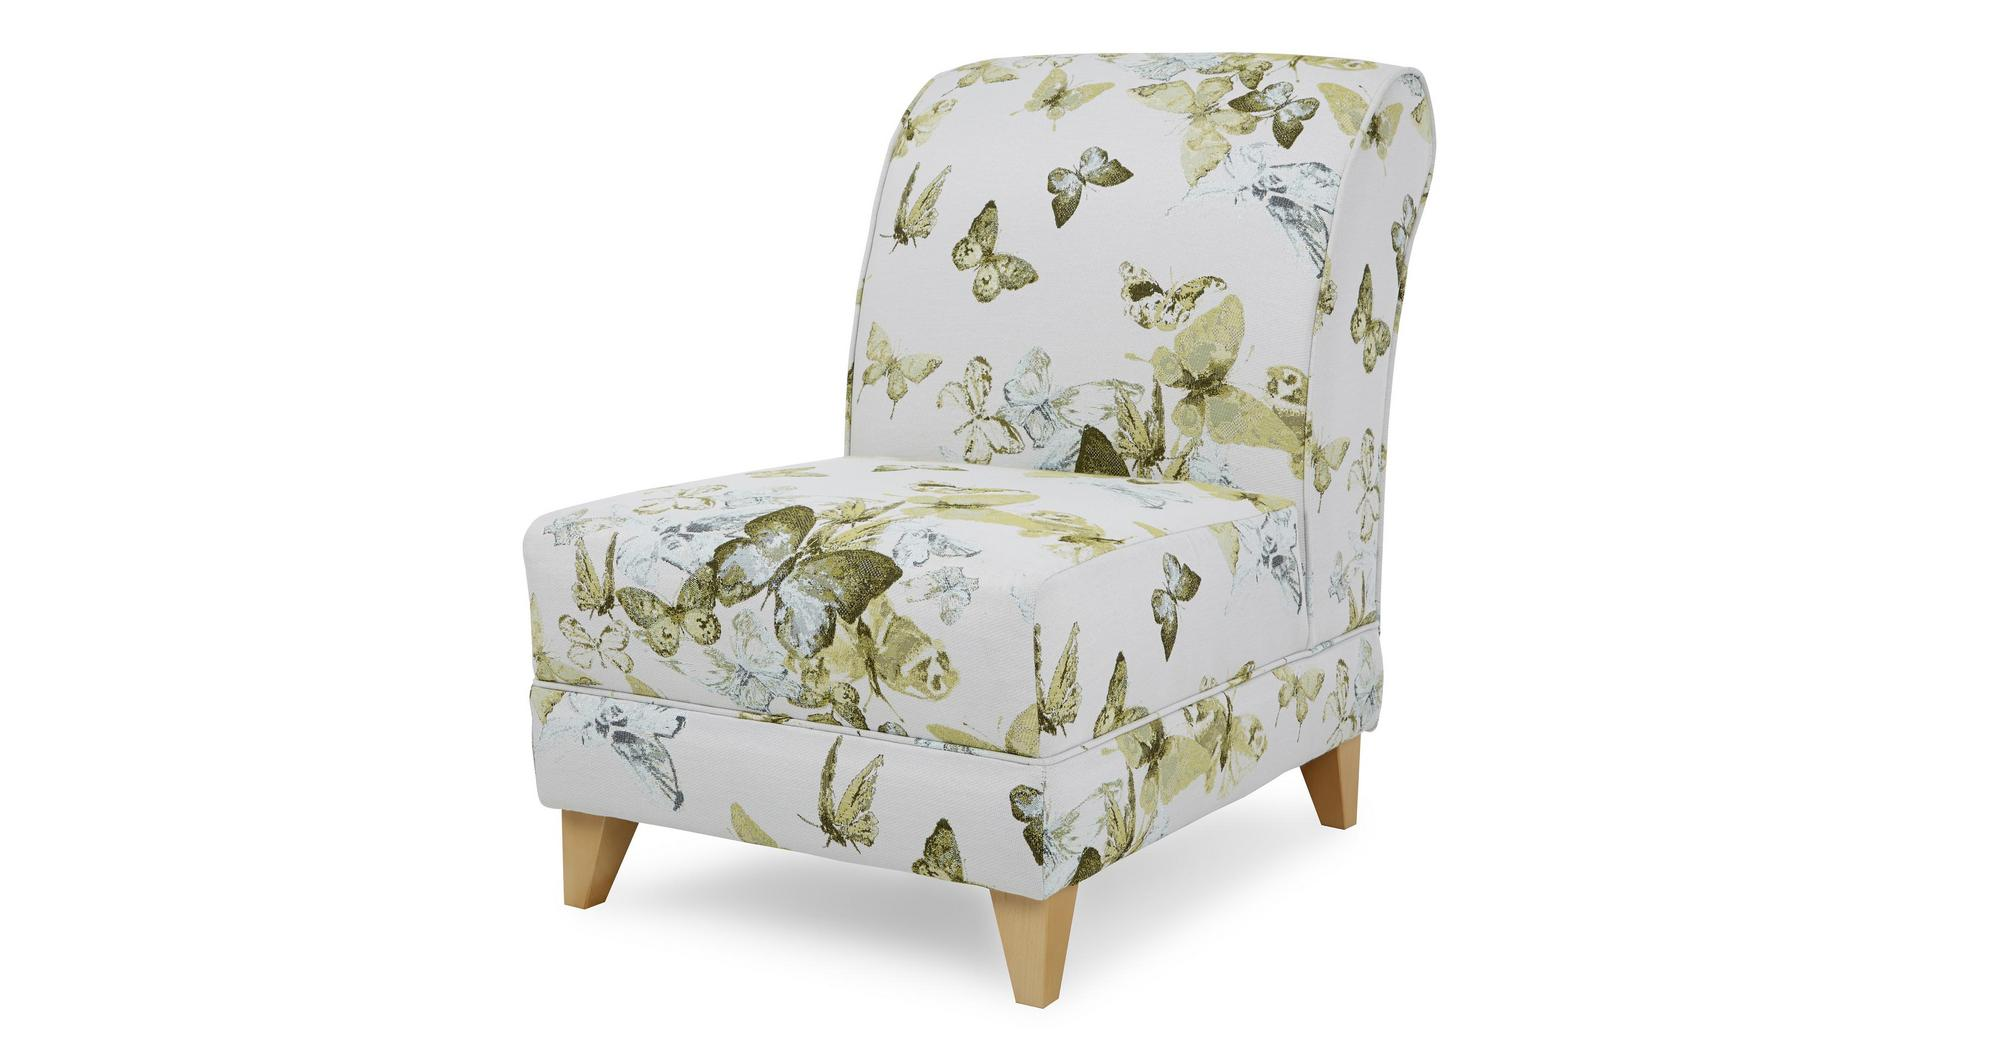 dfs corinne lime green fabric patterned accent chair 182856 ebay. Black Bedroom Furniture Sets. Home Design Ideas